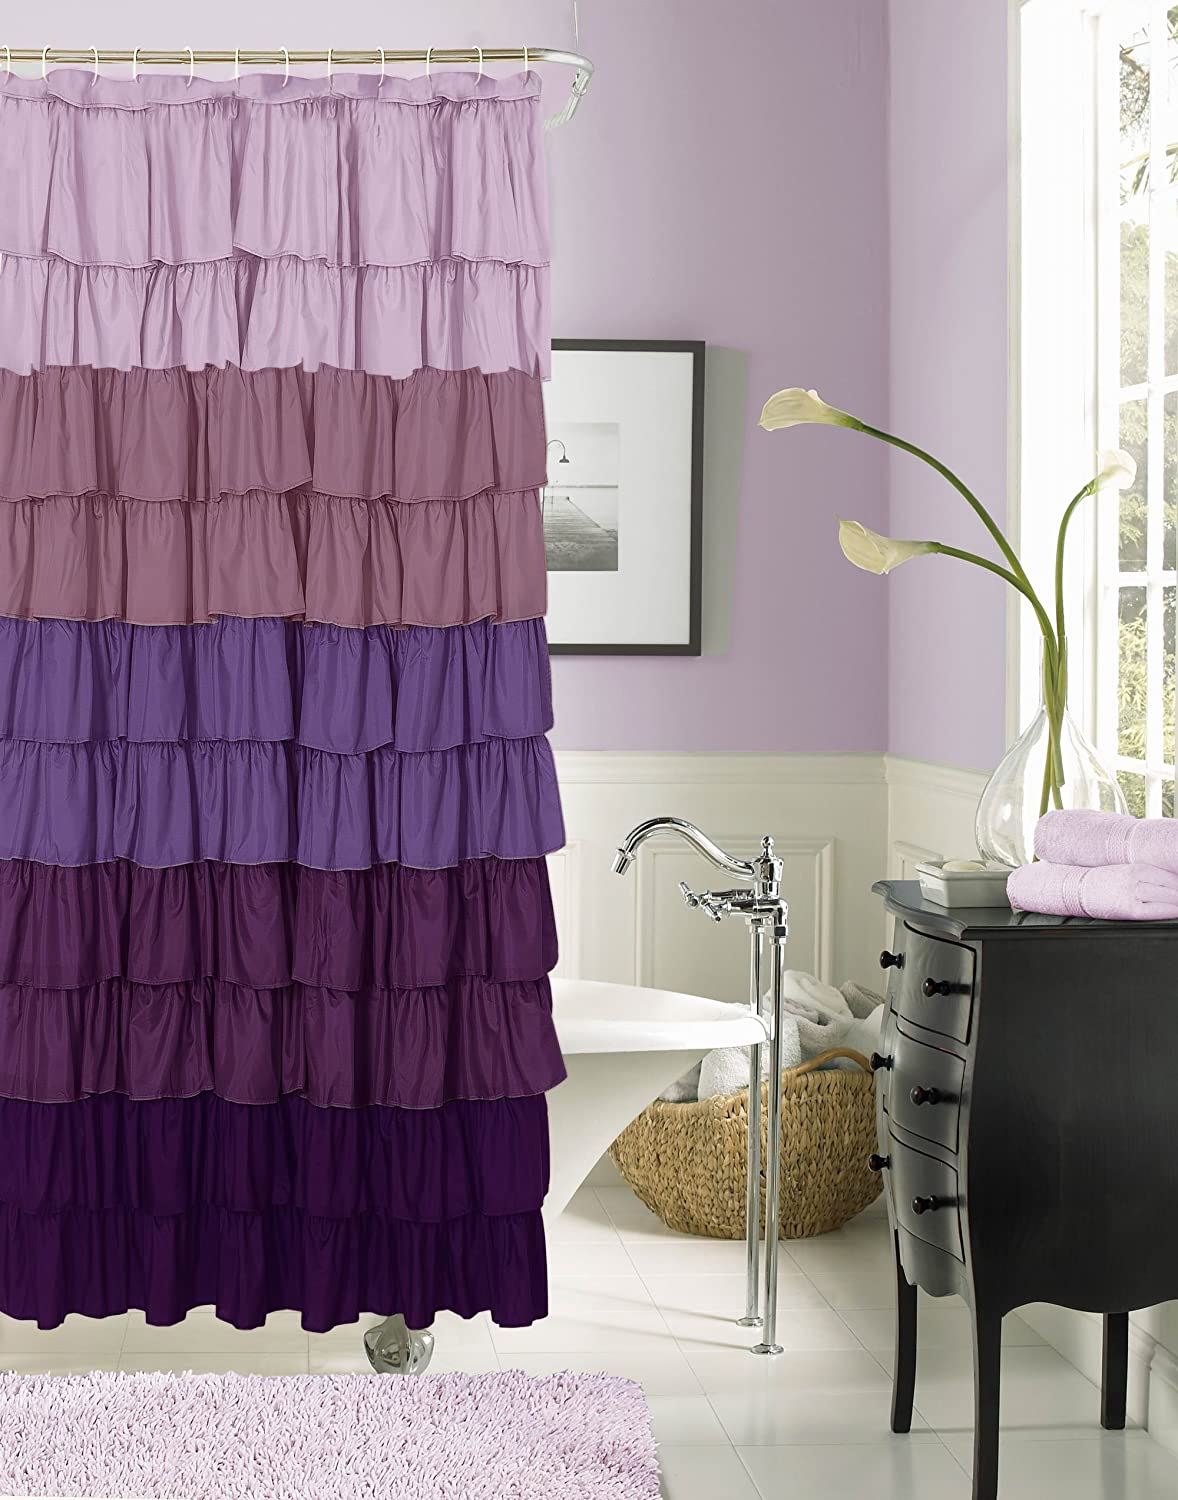 Country ruffled shower curtains - Amazon Com Dainty Home Flamenco Ruffled Shower Curtain 72 By 72 Inch Purple Home Kitchen